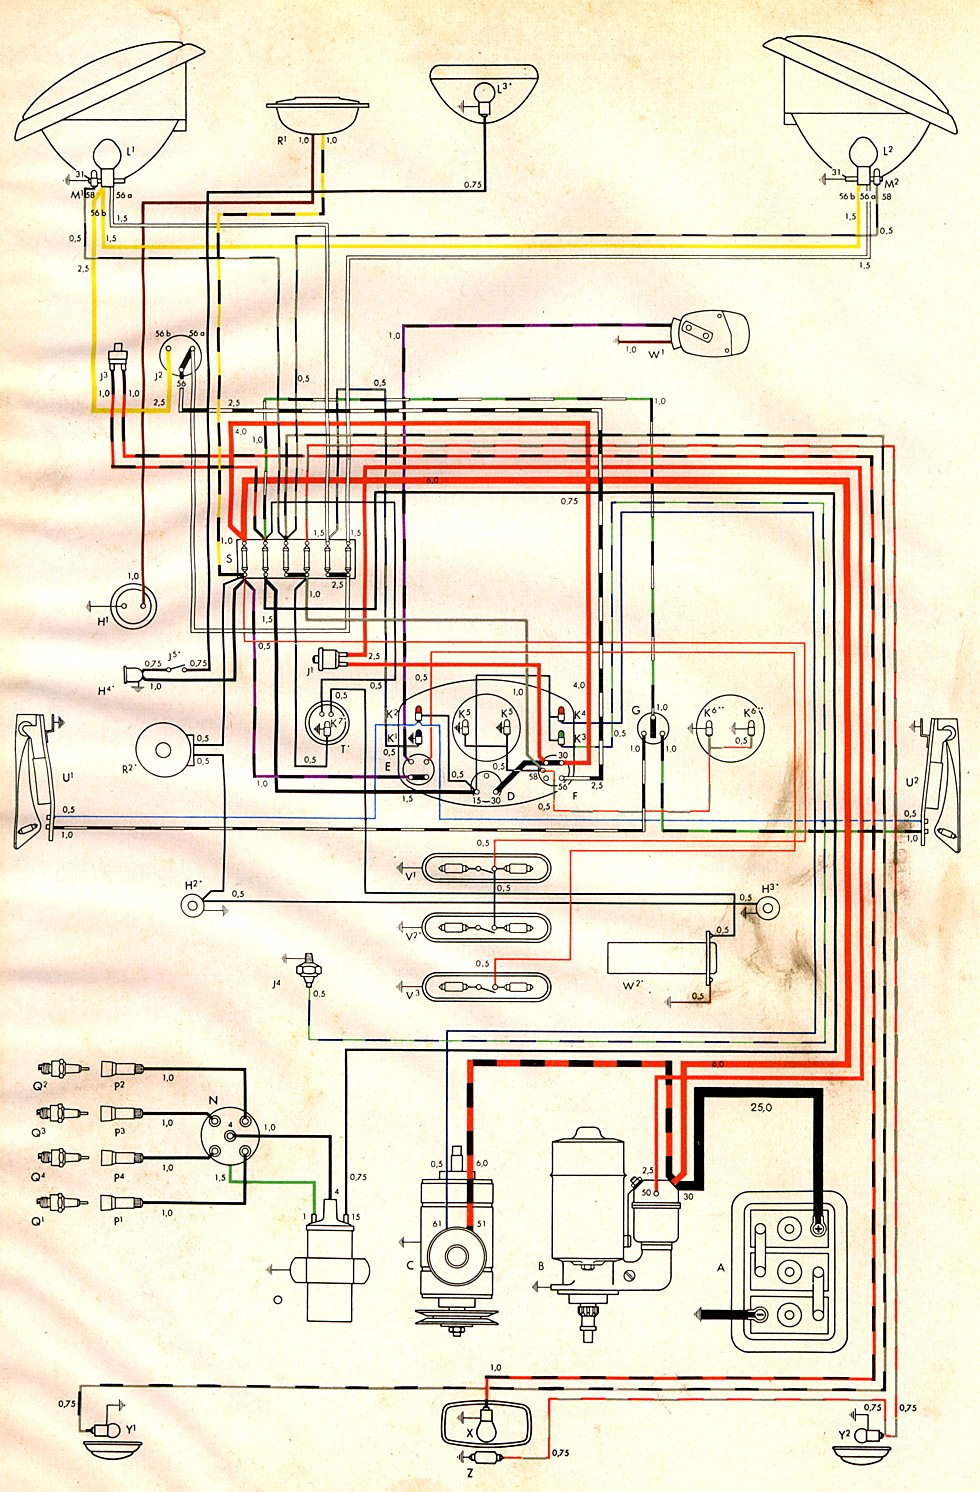 22Re Wiring Harness Diagram from www.thegoldenbug.com